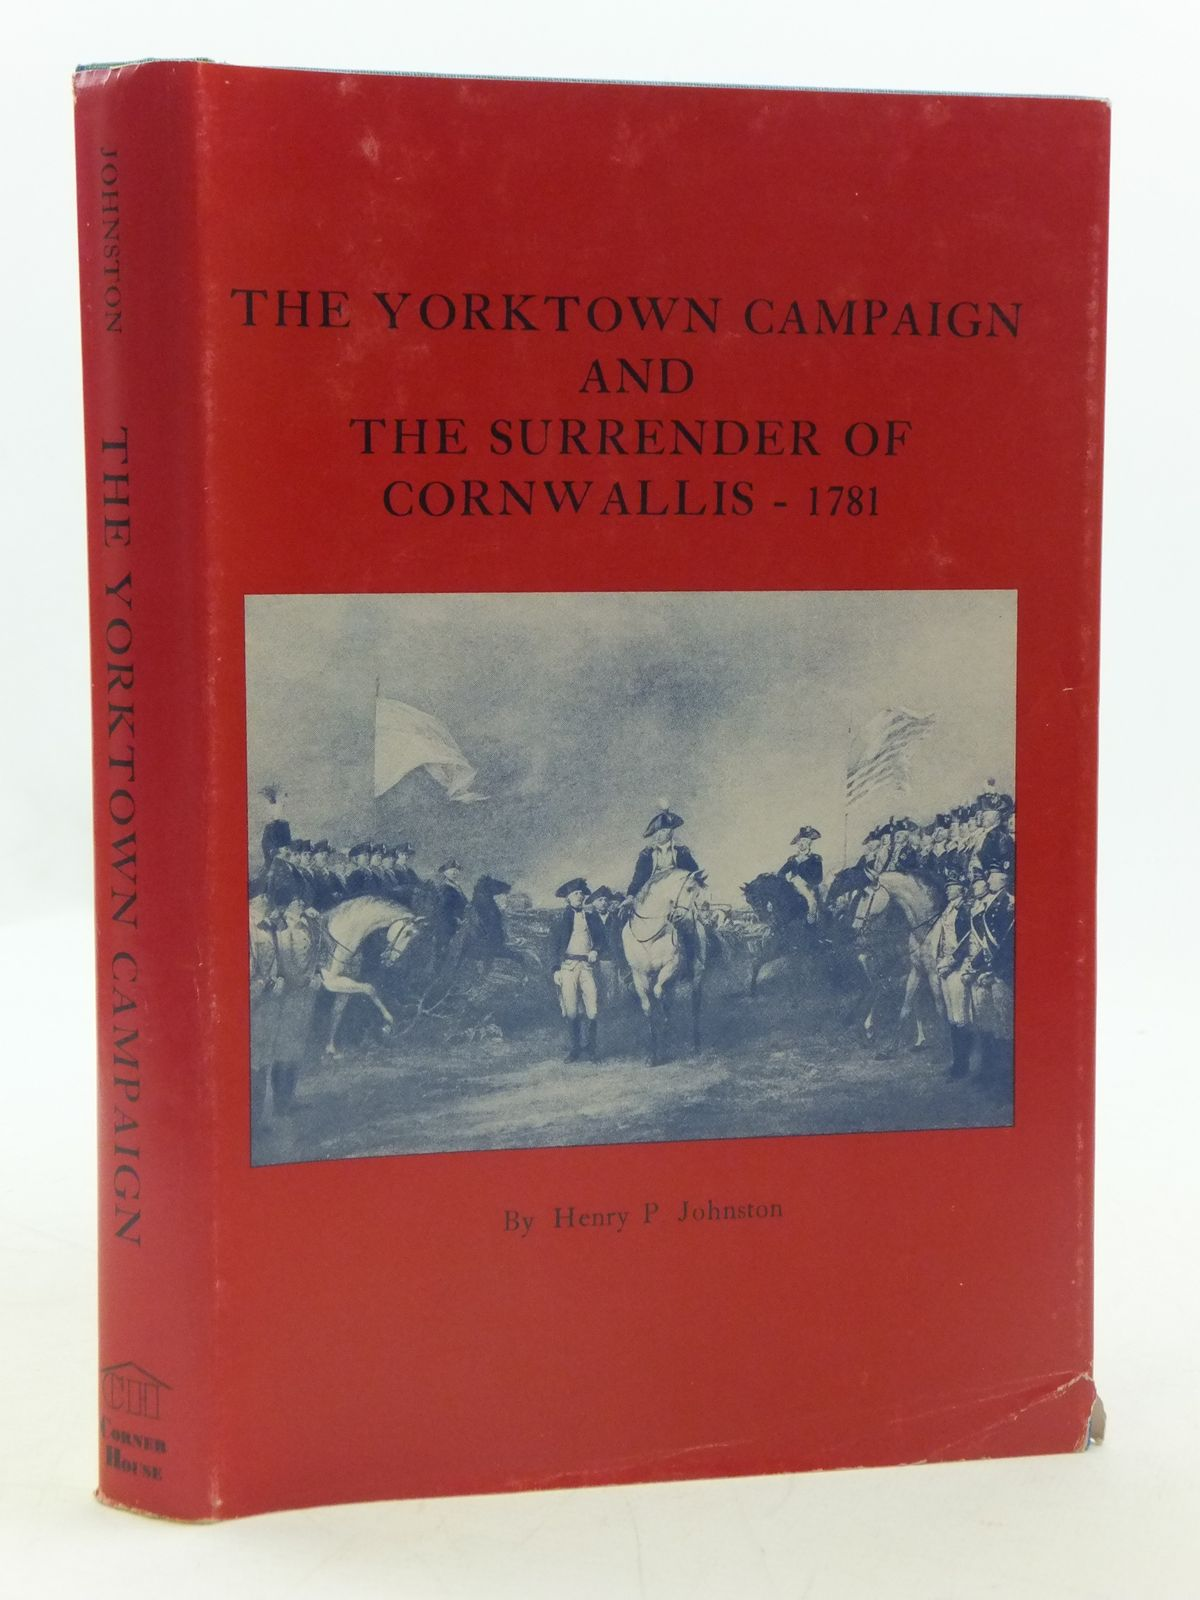 Photo of THE YORKTOWN CAMPAIGN AND THE SURRENDER OF CORNWALLIS - 1781